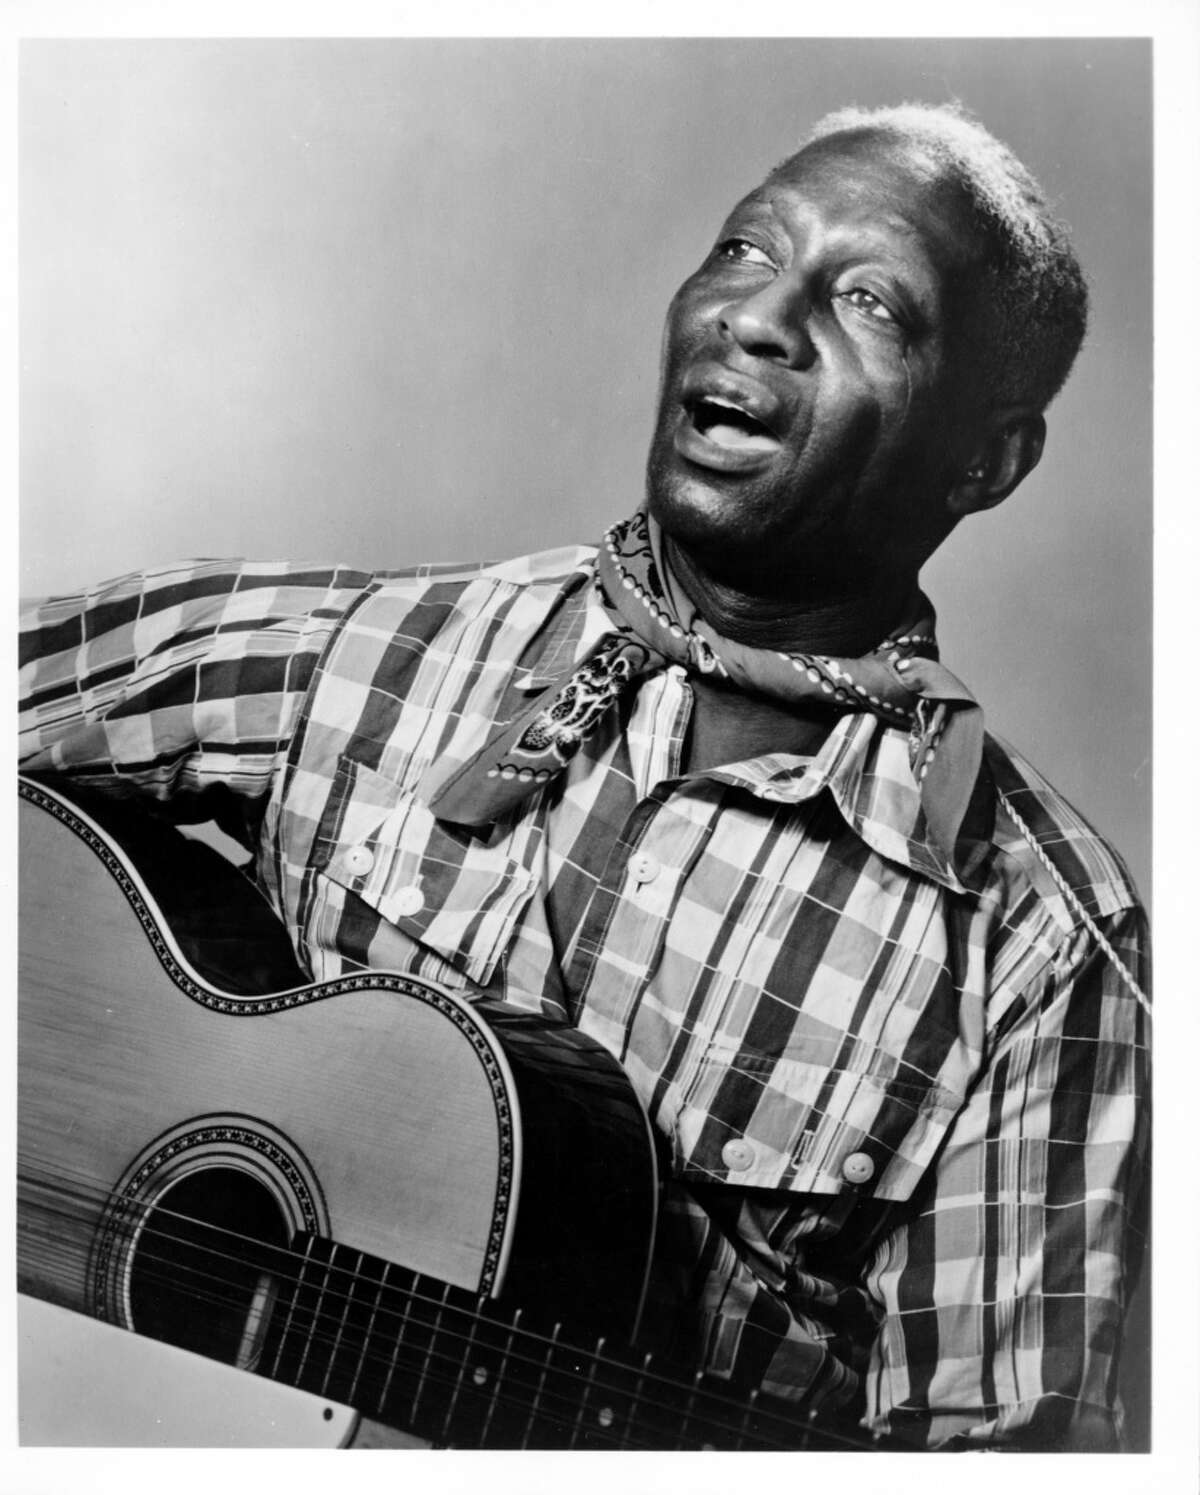 `Midnight Special' by Leadbelly Sample lyrics: If you ever go to Houston, you better walk right / You better not stagger, you better not fight